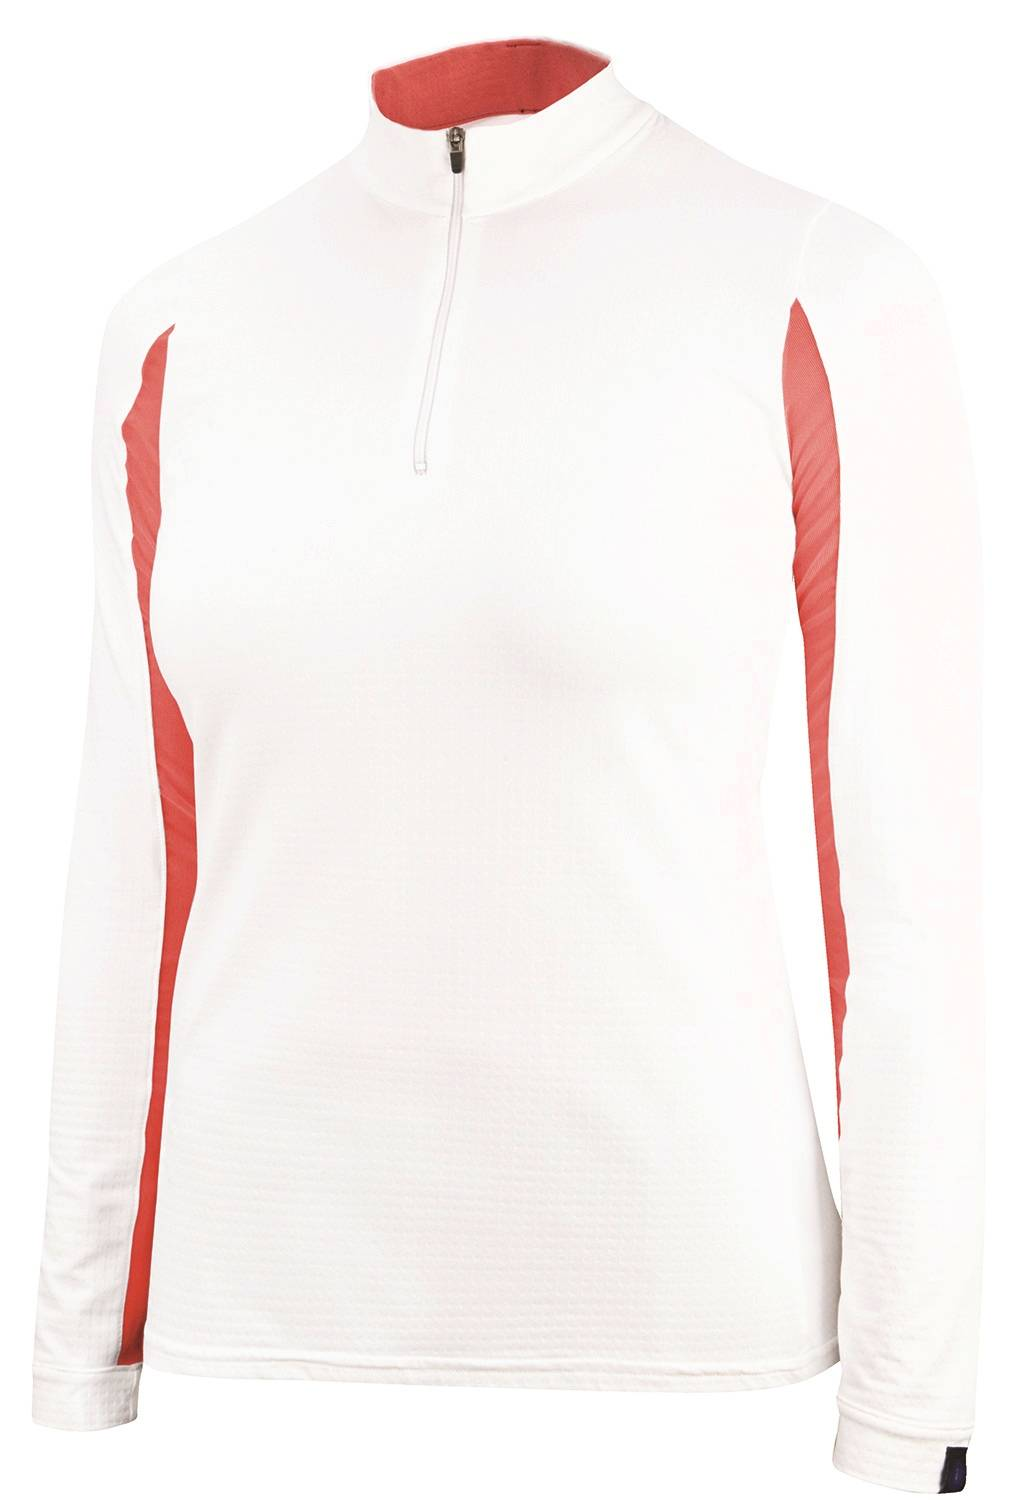 Irideon Cooldown Icefil Long Sleeve Jersey